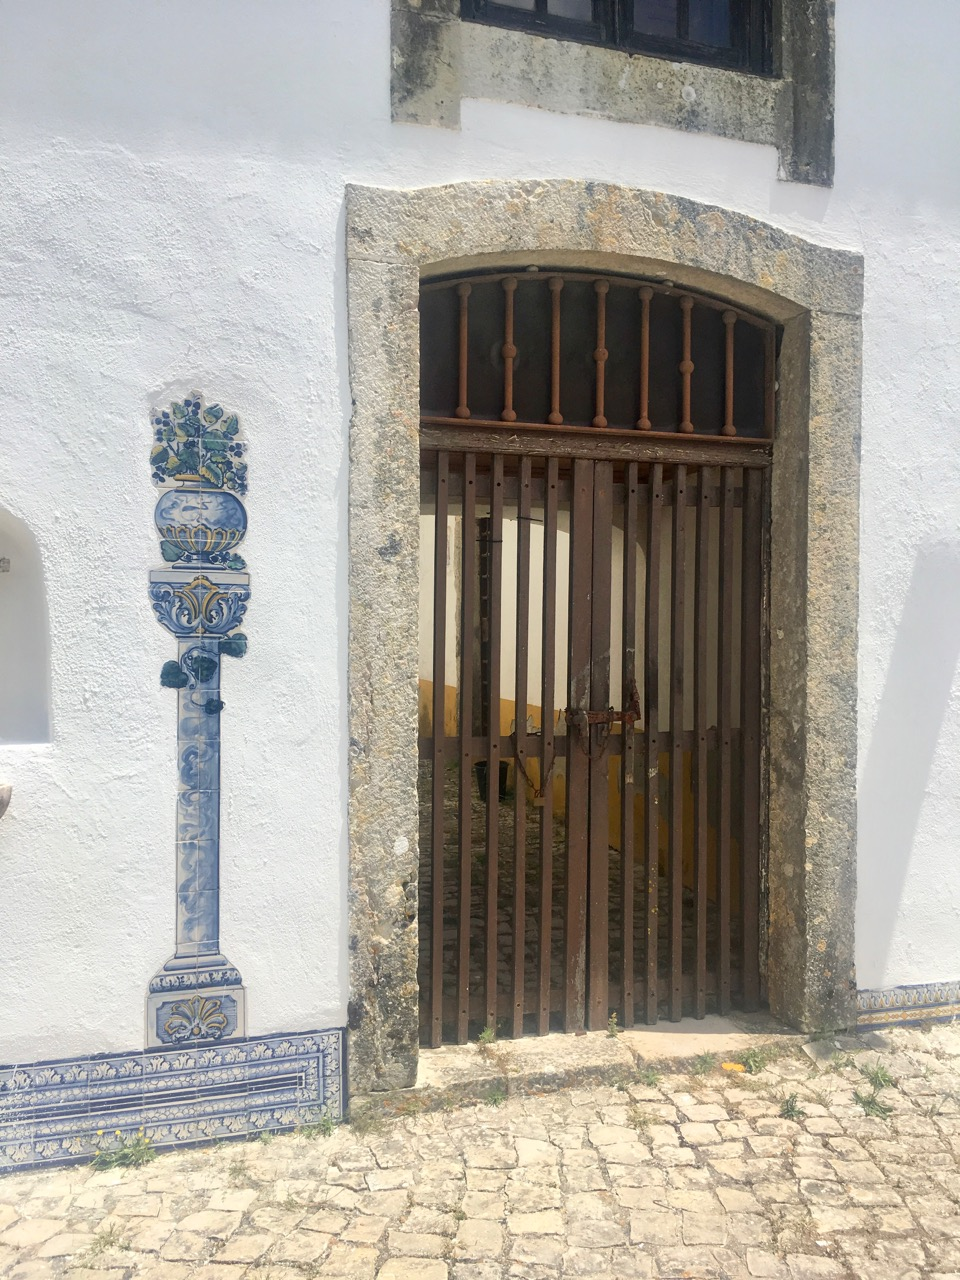 Beautifully stylish Azulejo tiles, and a rather functional gate by comparison.